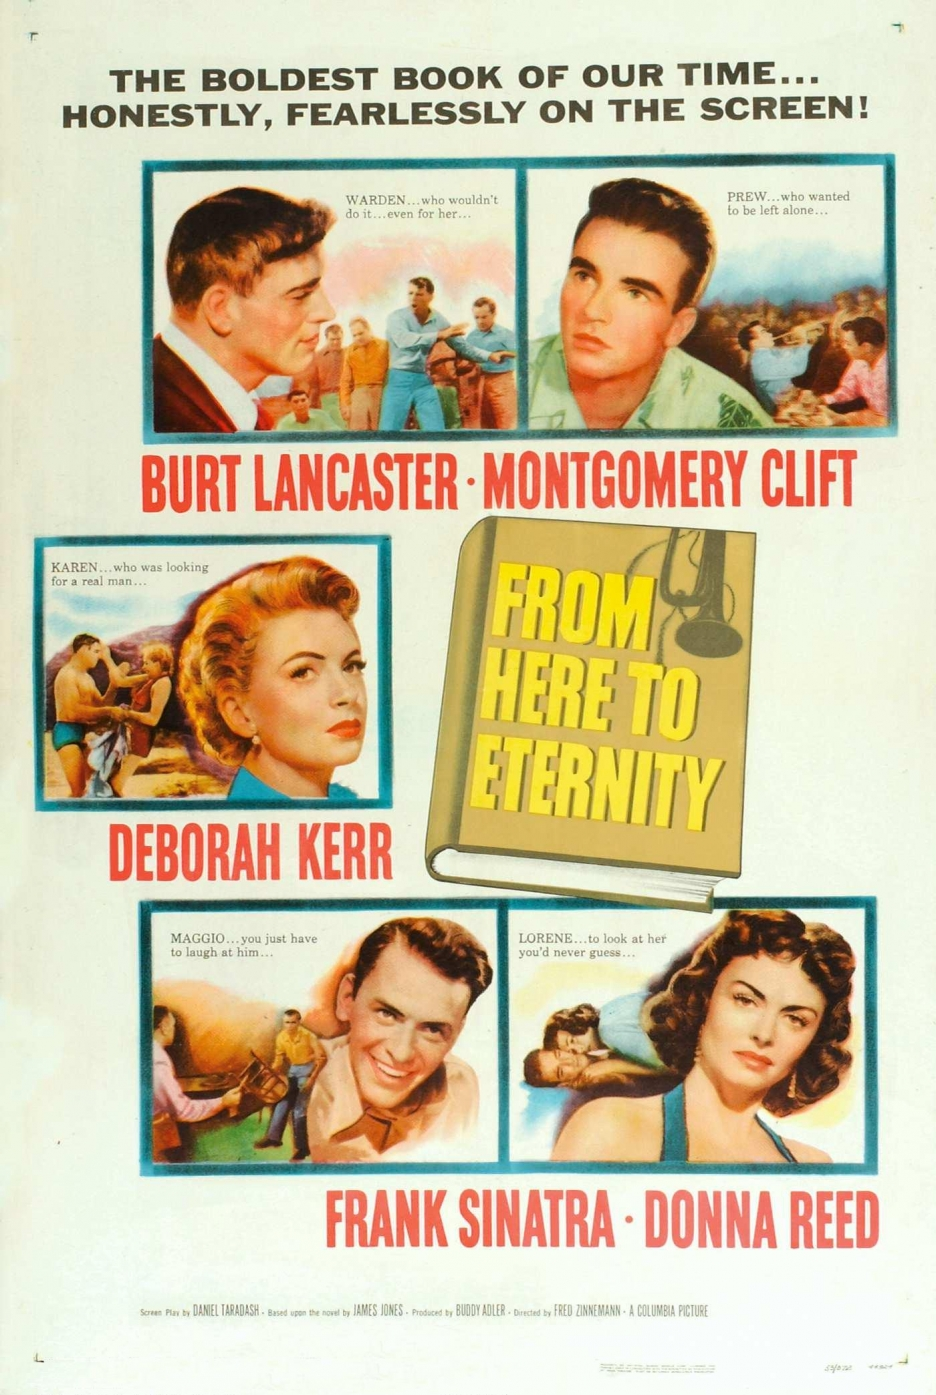 Deborah Kerr, Burt Lancaster, Frank Sinatra, Ernest Borgnine, Montgomery Clift, and Donna Reed in From Here to Eternity (1953)